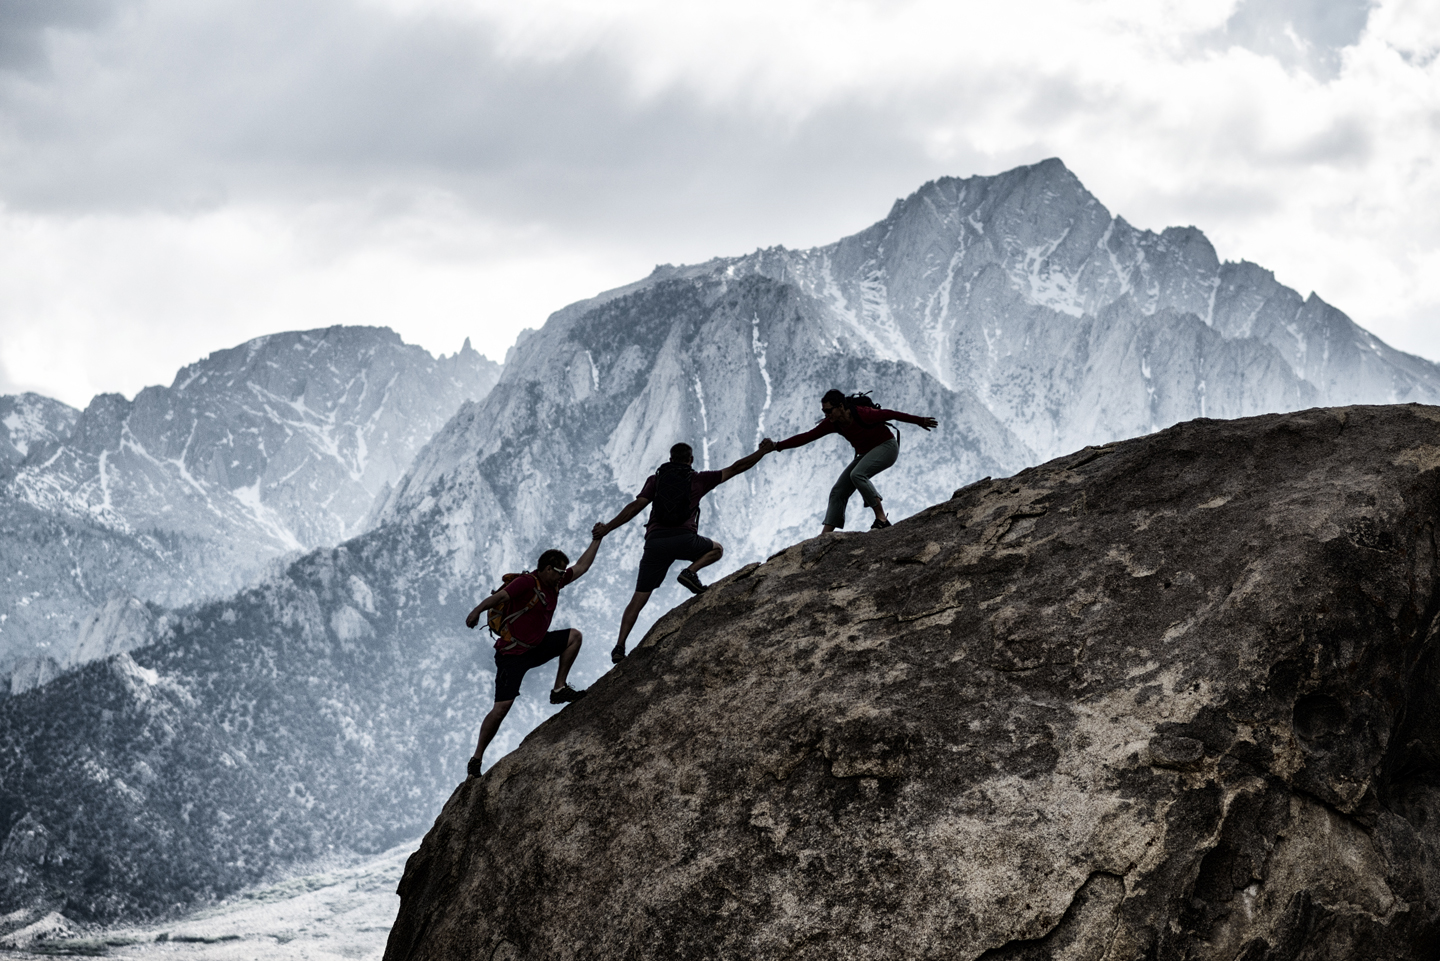 Three people working together to climb a mountain